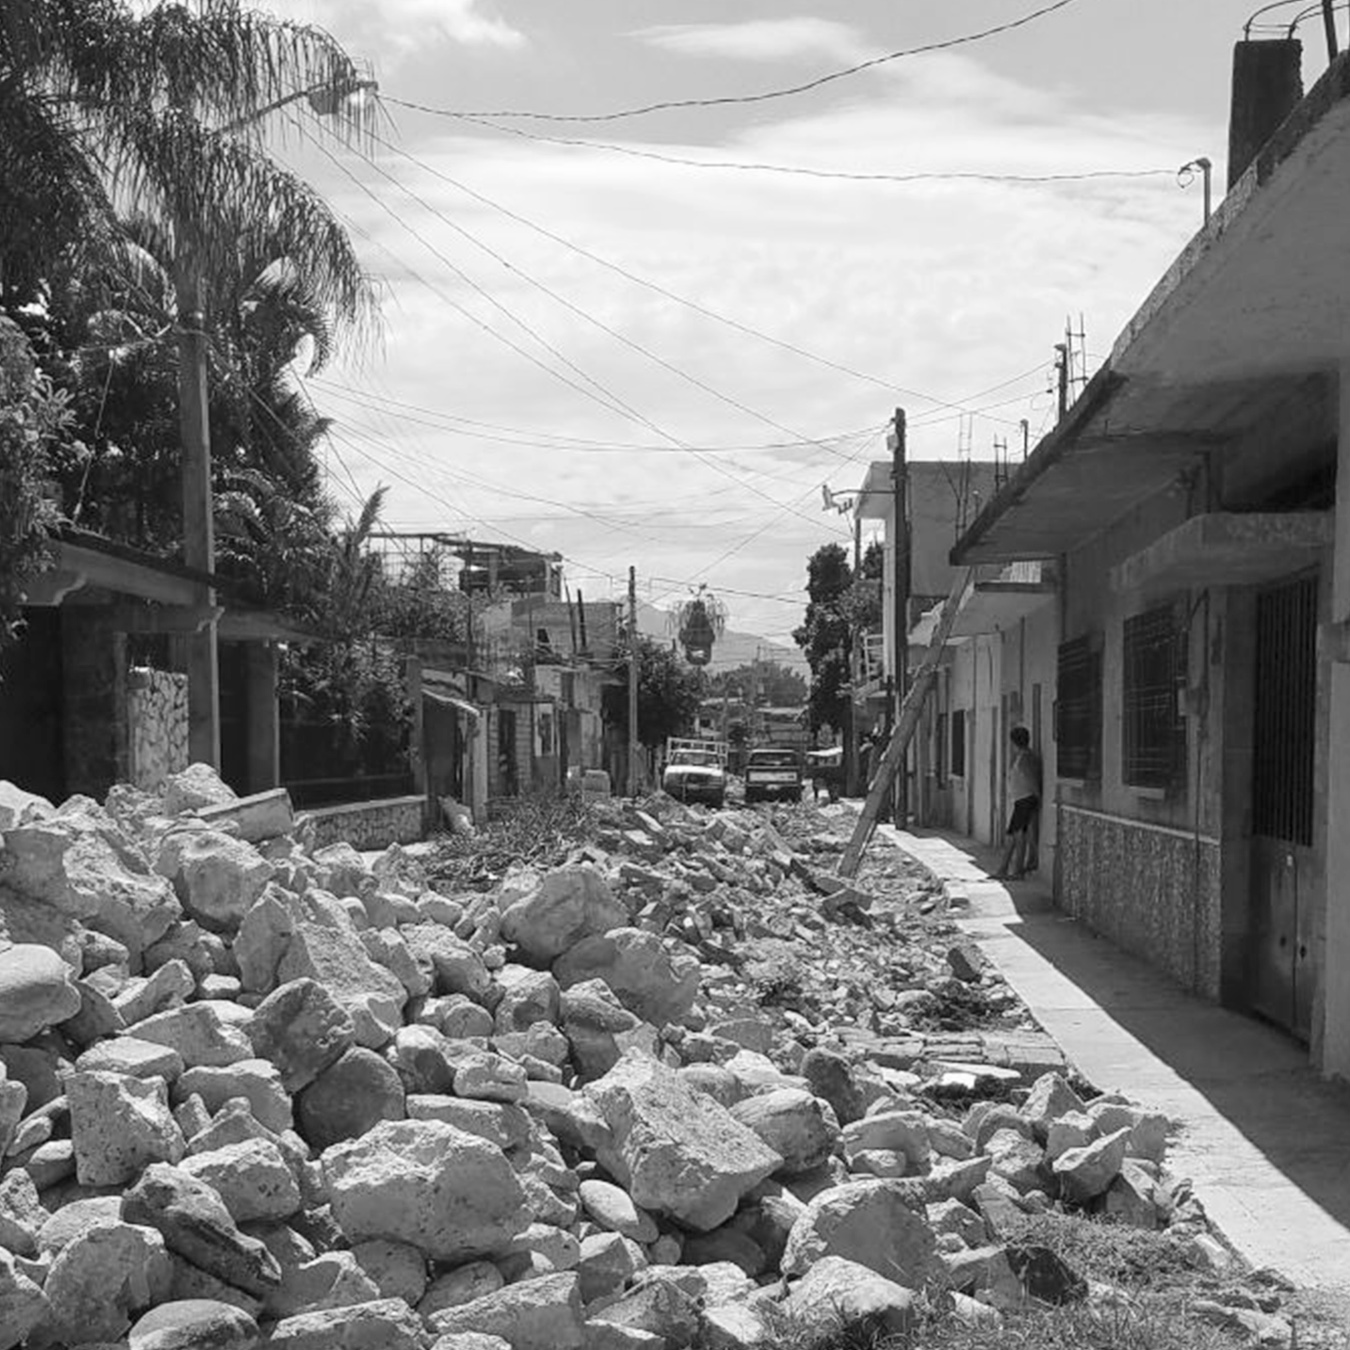 Central-Mexico-Earthquake-Rubble-in-Street